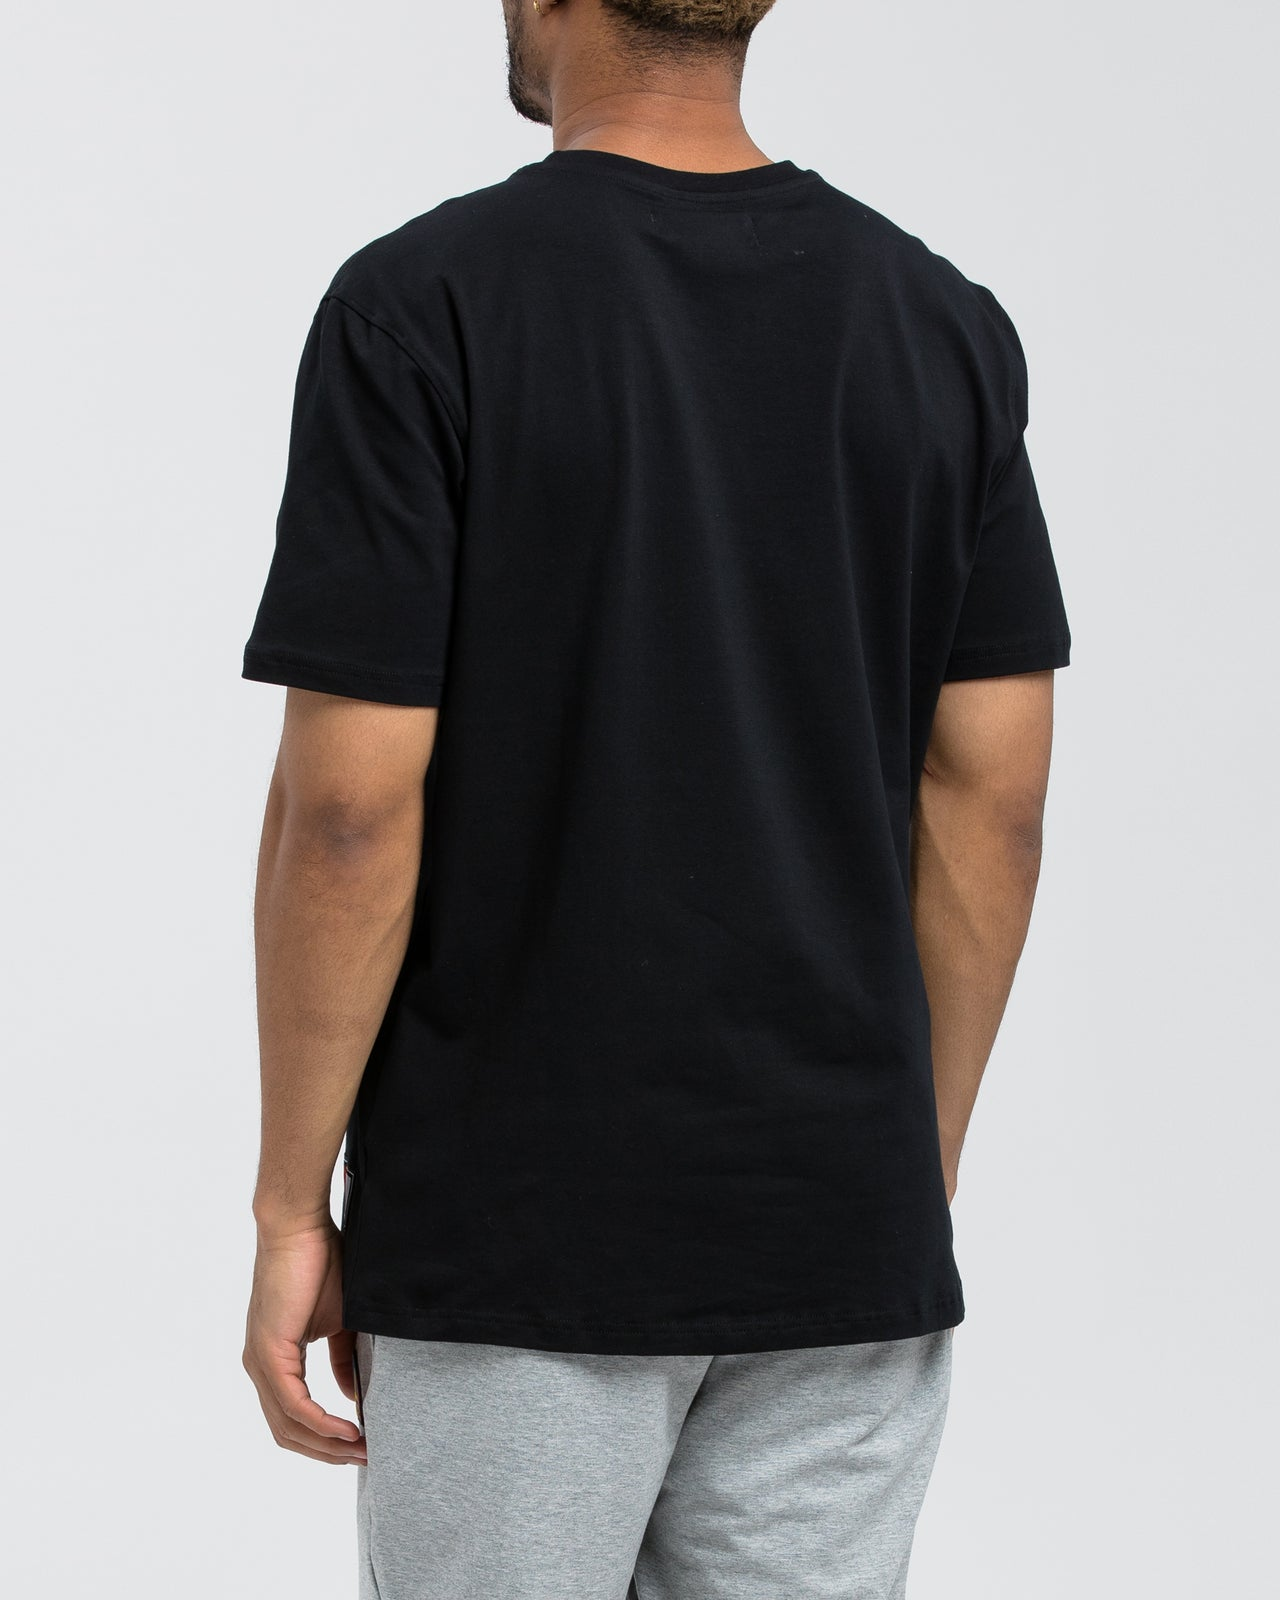 Black Pyramid Tee - Color: Black